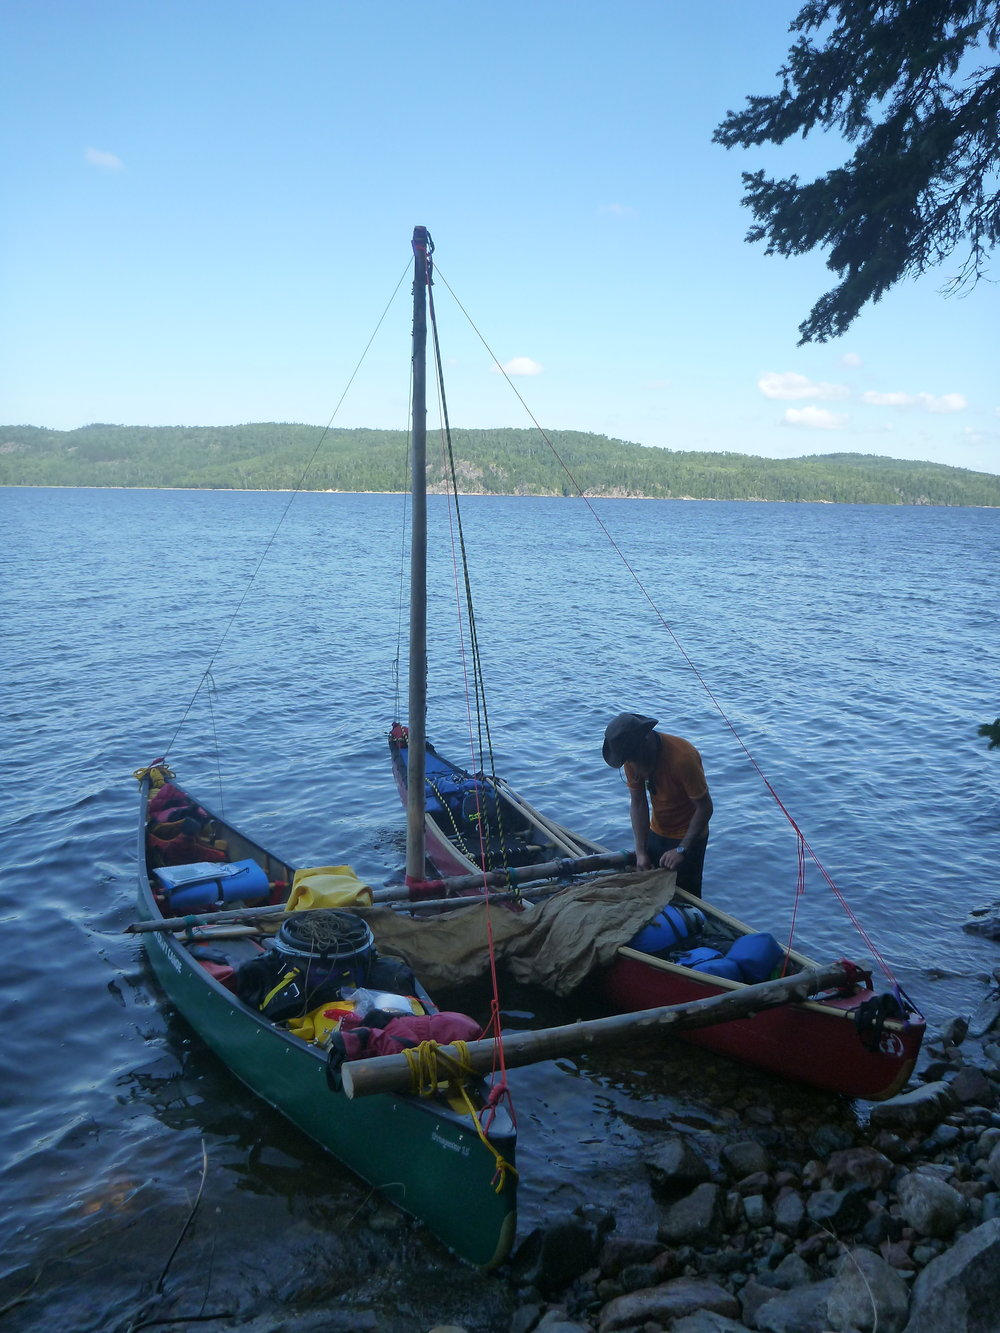 Yup! He's making a catamaran out of two canoes